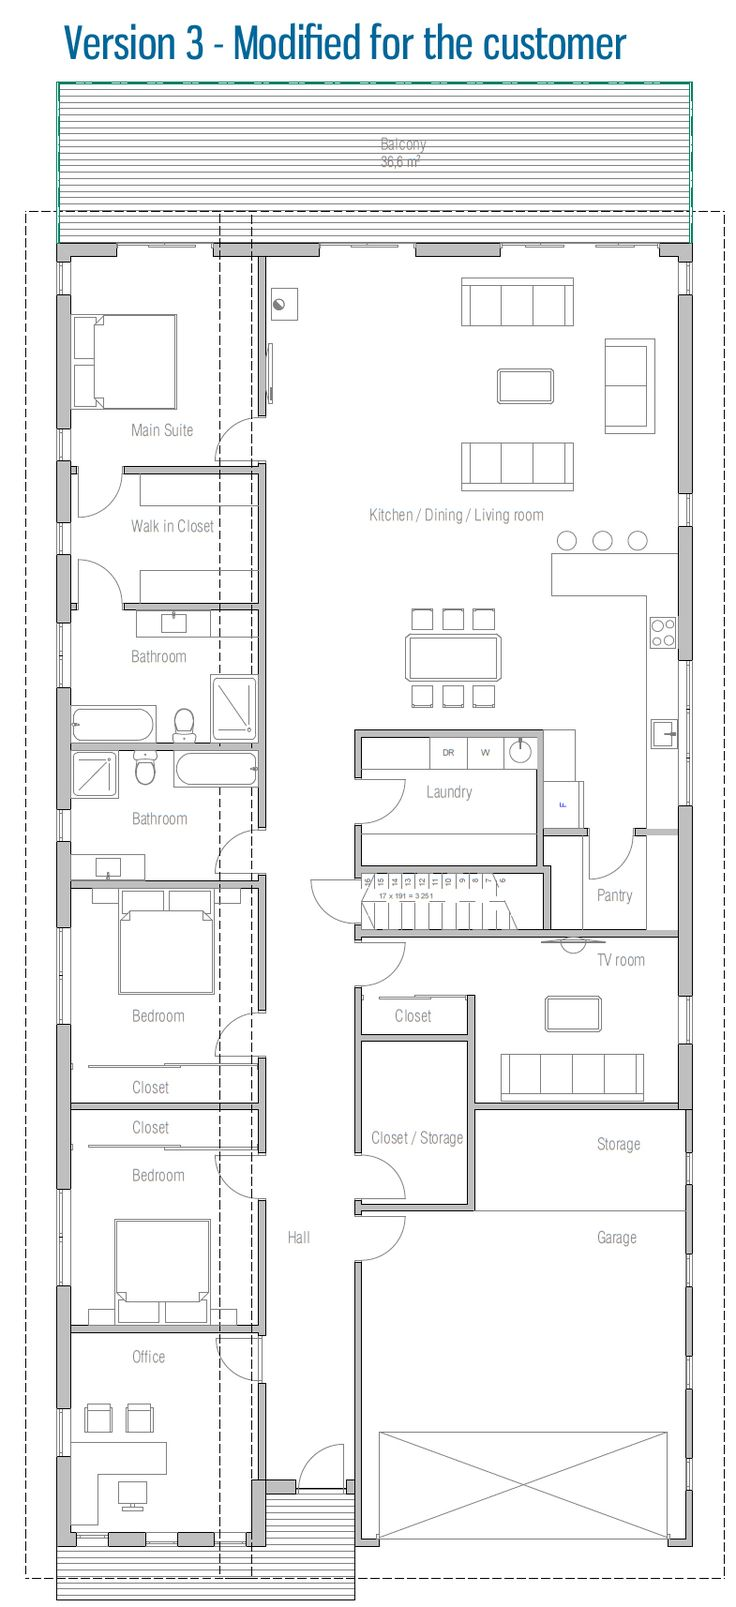 619 best Layout Plans images on Pinterest | Architecture, Floor ...